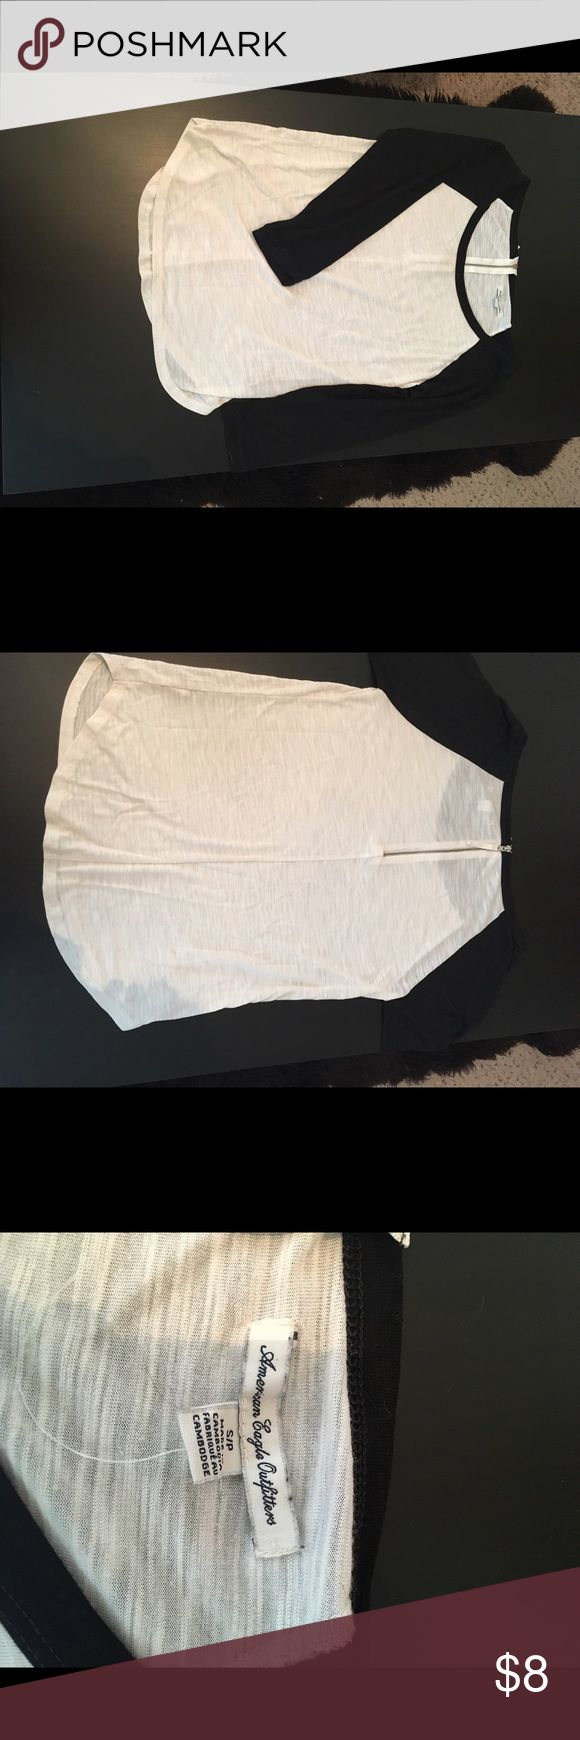 American eagle black and white baseball t shirt American eagle black and white baseball tee with zipper on back. Size small. Earliest I can ship is Saturday evening American Eagle Outfitters Tops Tees - Long Sleeve